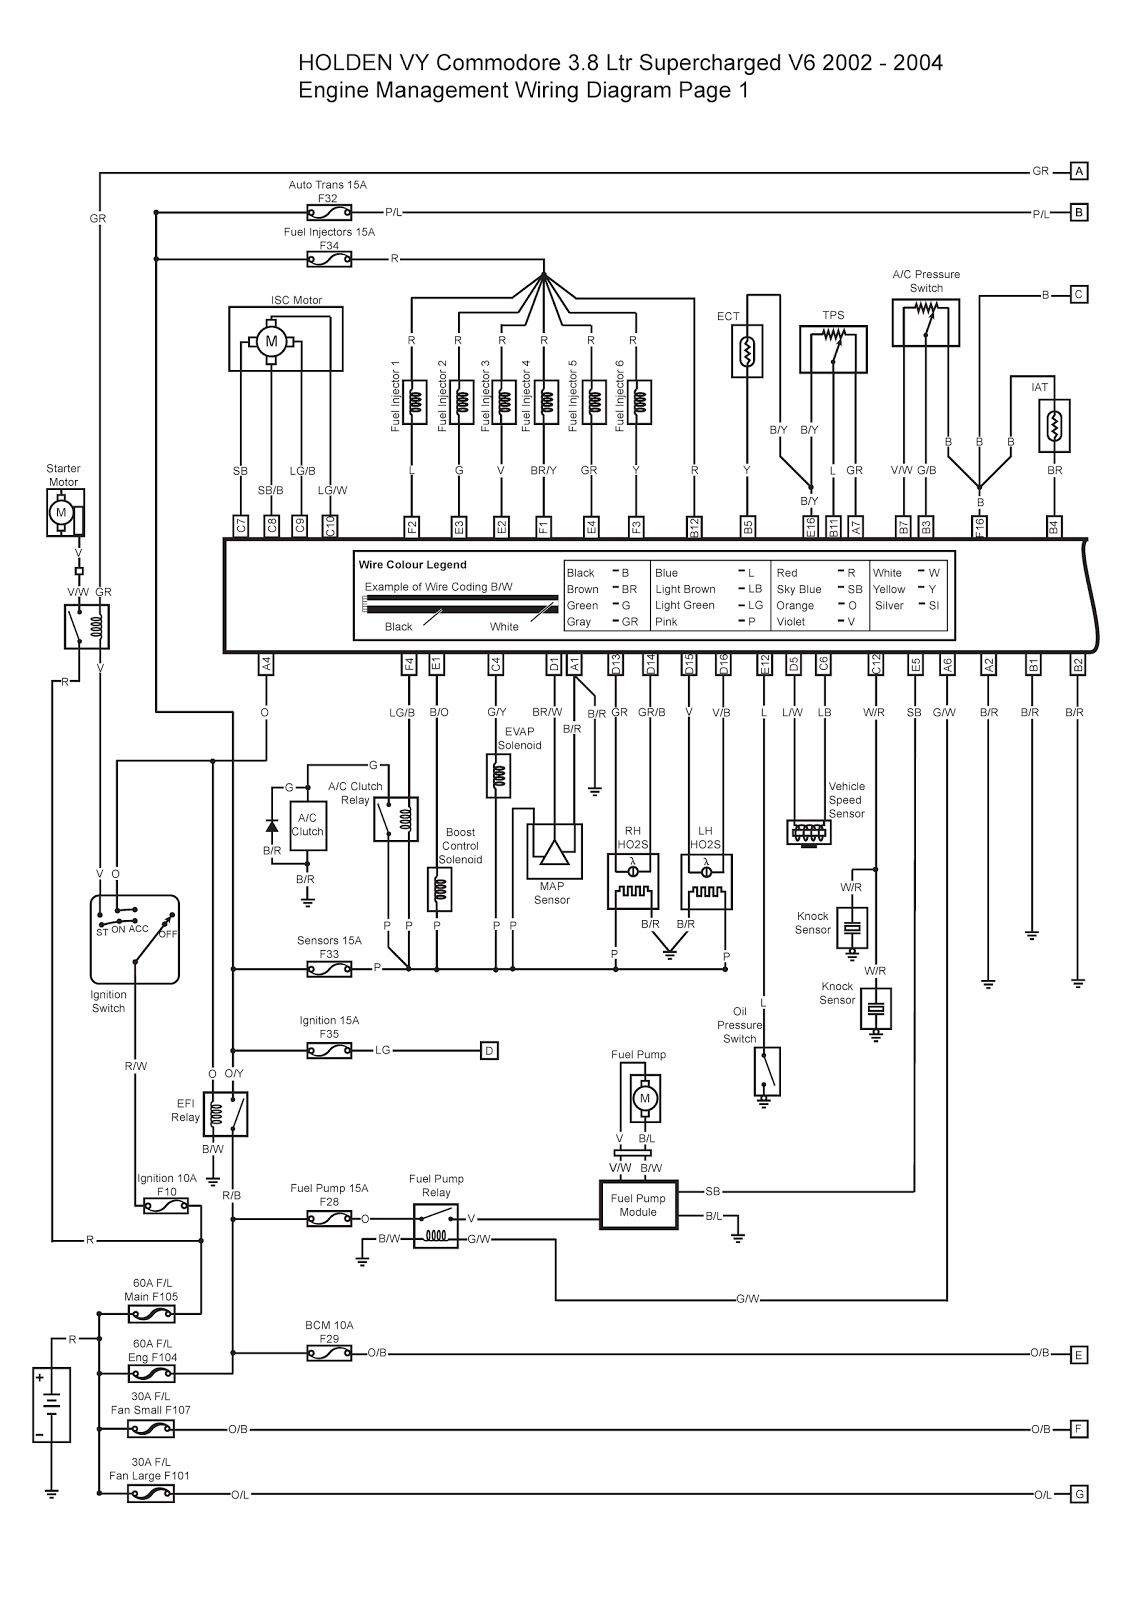 0001 vz wiring diagram efcaviation com vz bcm wiring diagram at aneh.co